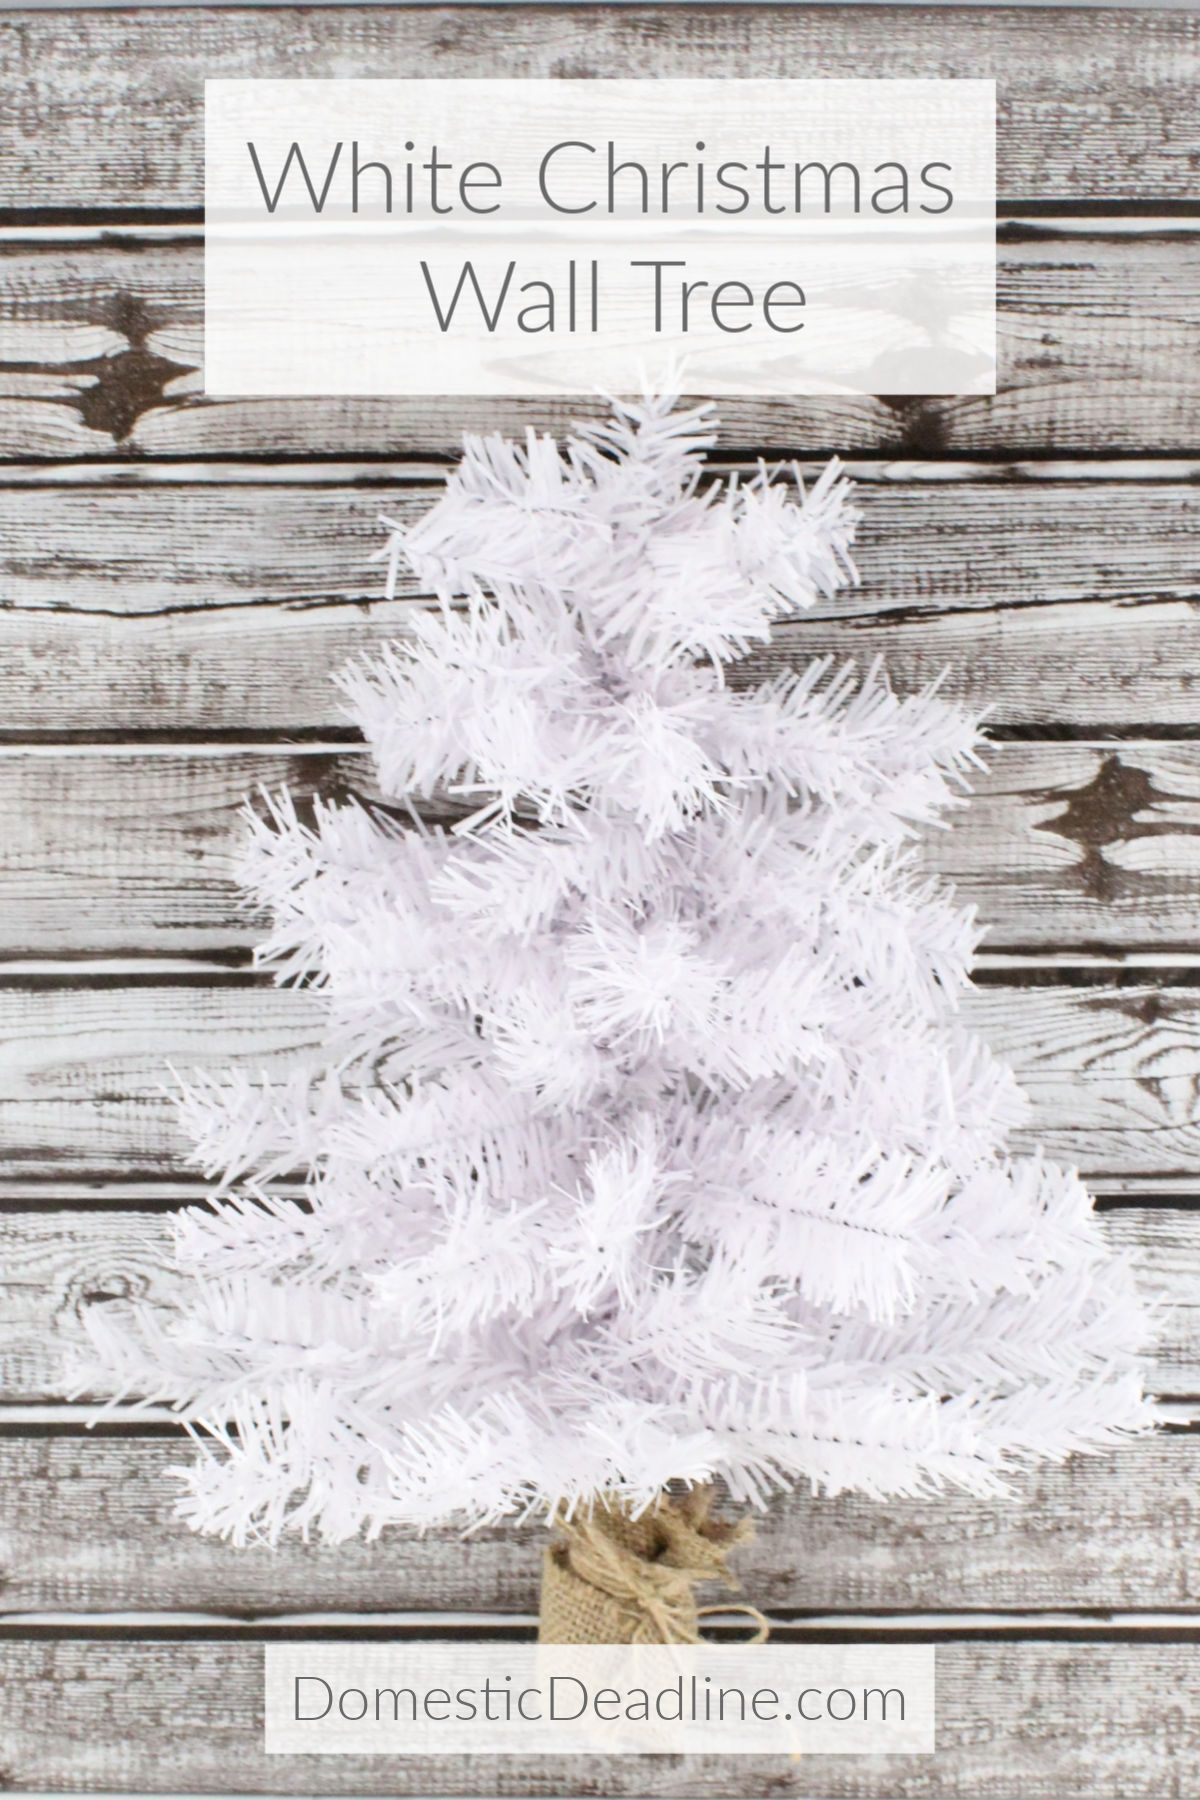 White Christmas Wall Tree Dollar Store Project Domestic Deadline Tree Wall Dollar Stores Dollar Store Diy Decorations